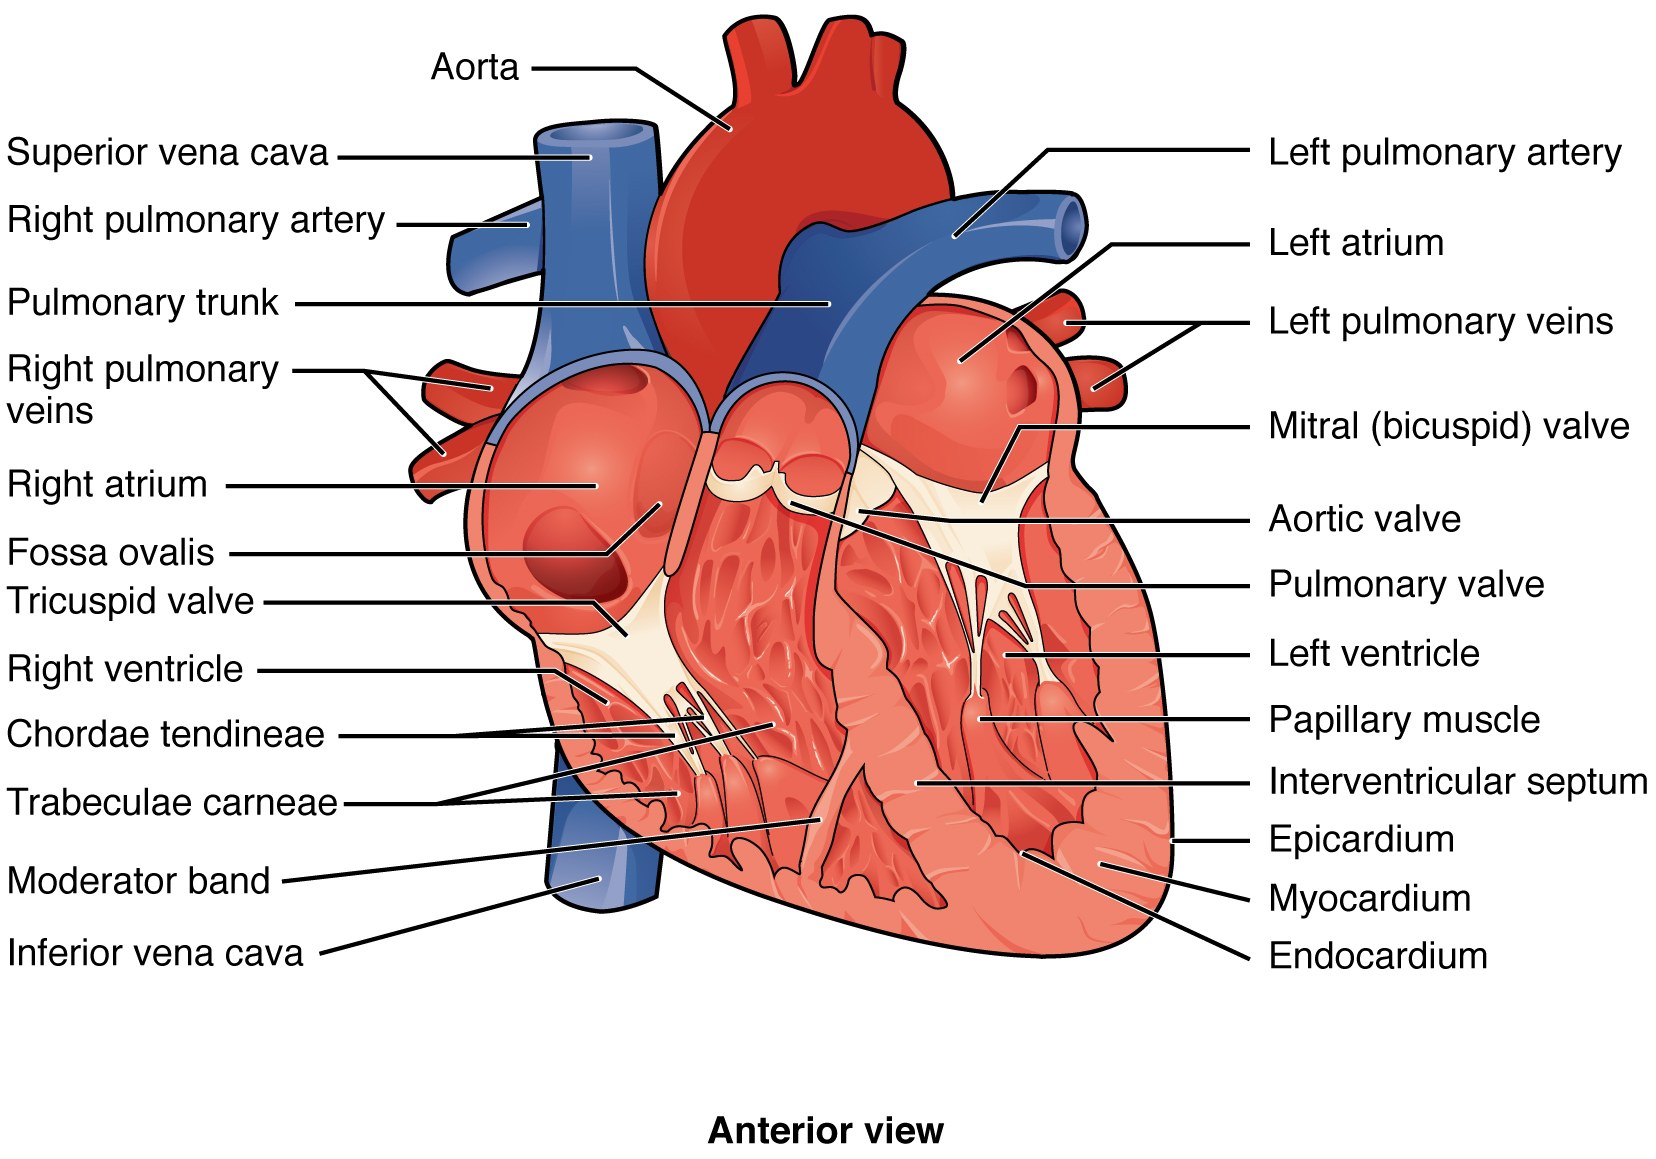 Aortic Valve 2: Quantification Of AS image